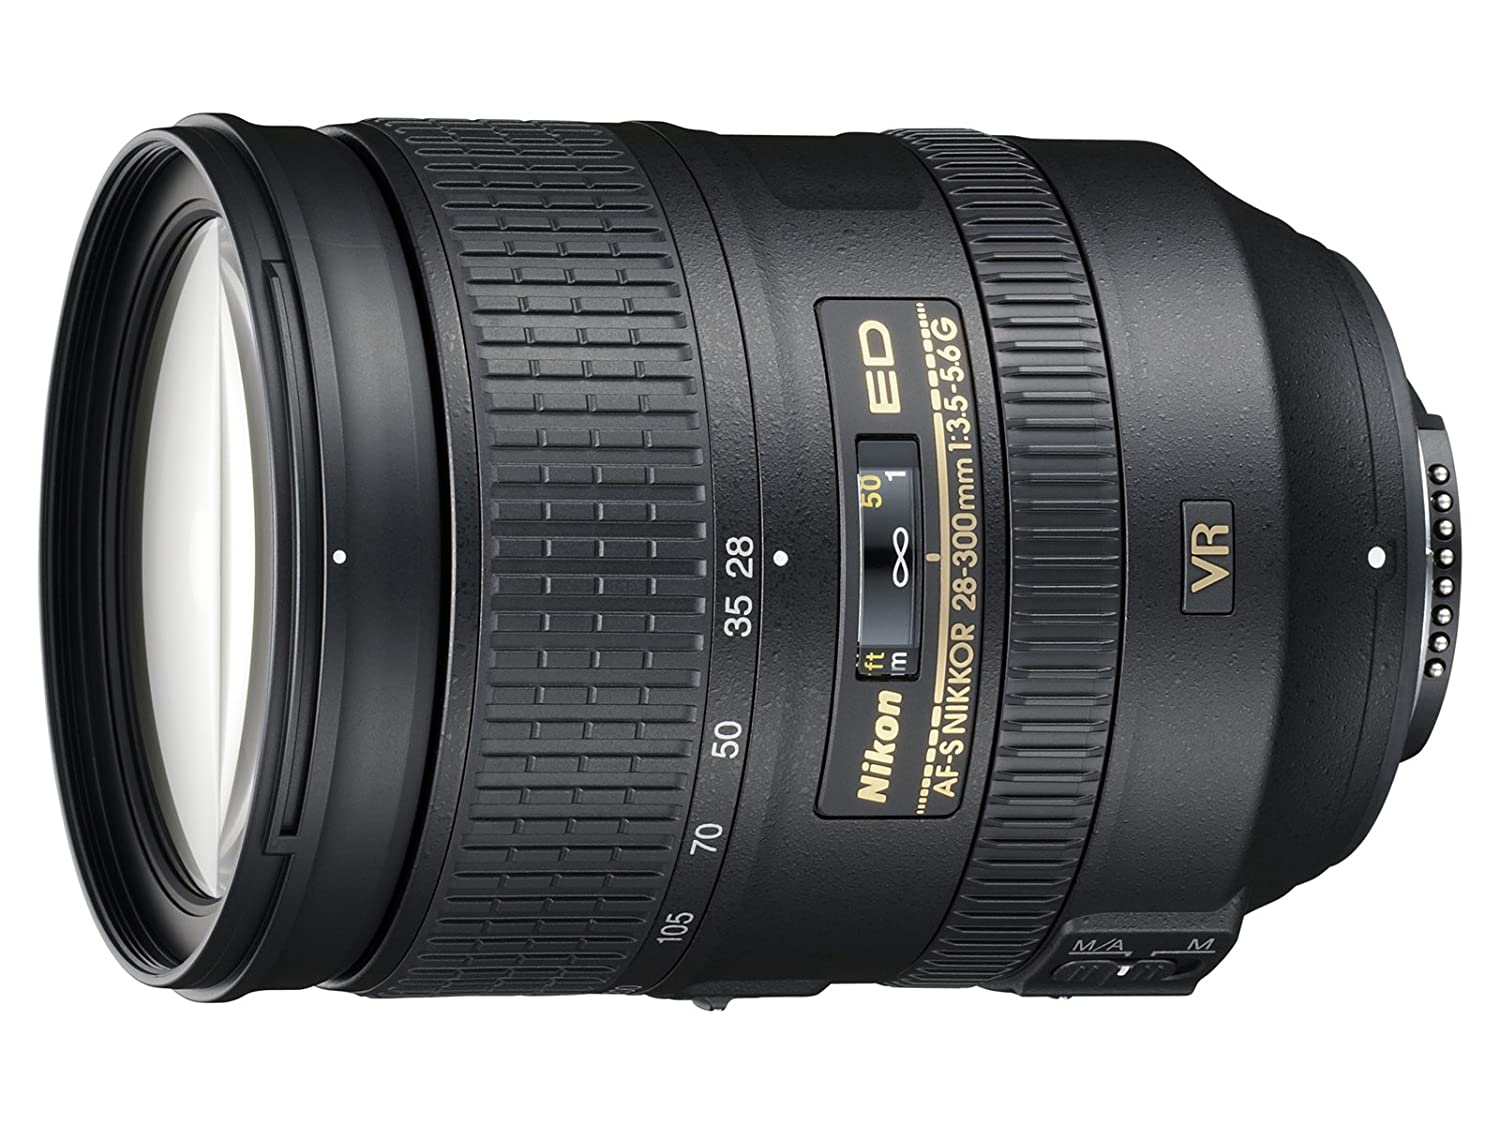 Nikon AF-S FX NIKKOR 28-300mm f/3.5-5.6G ED Vibration Reduction Zoom Lens Black Friday Deals 2019